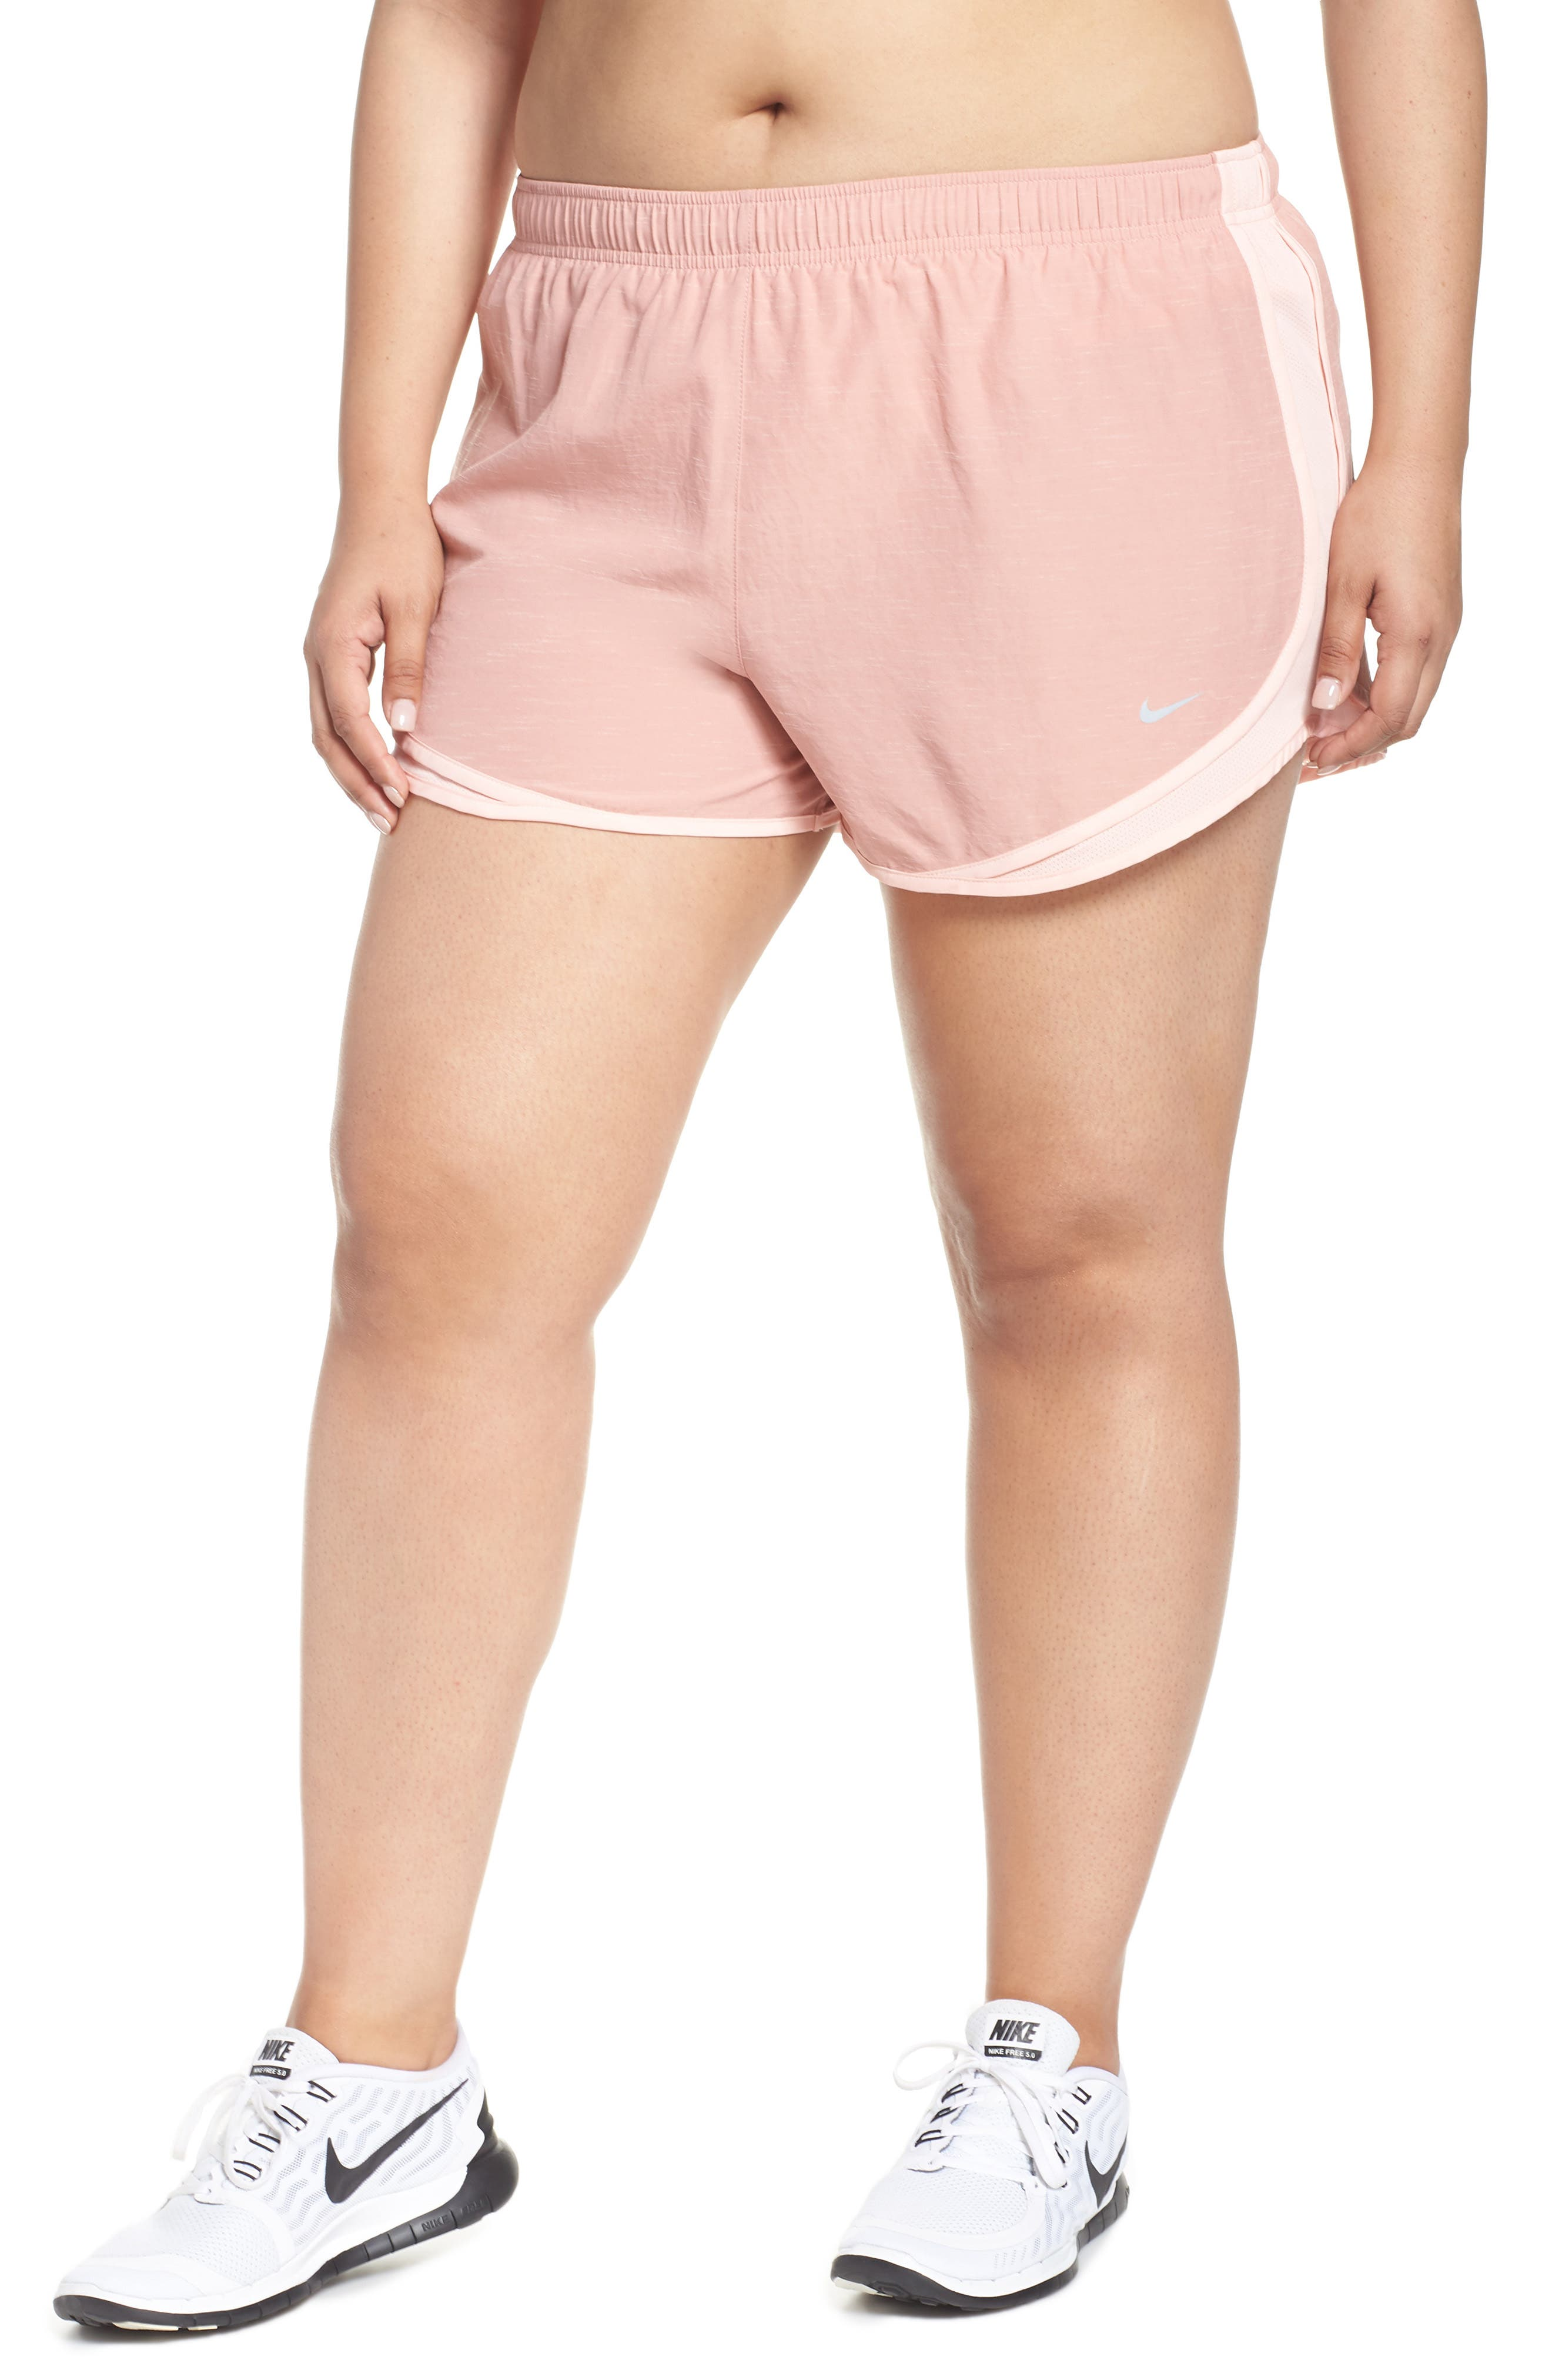 Dry Tempo High Rise Running Shorts,                         Main,                         color, RUST PINK/ STORM PINK